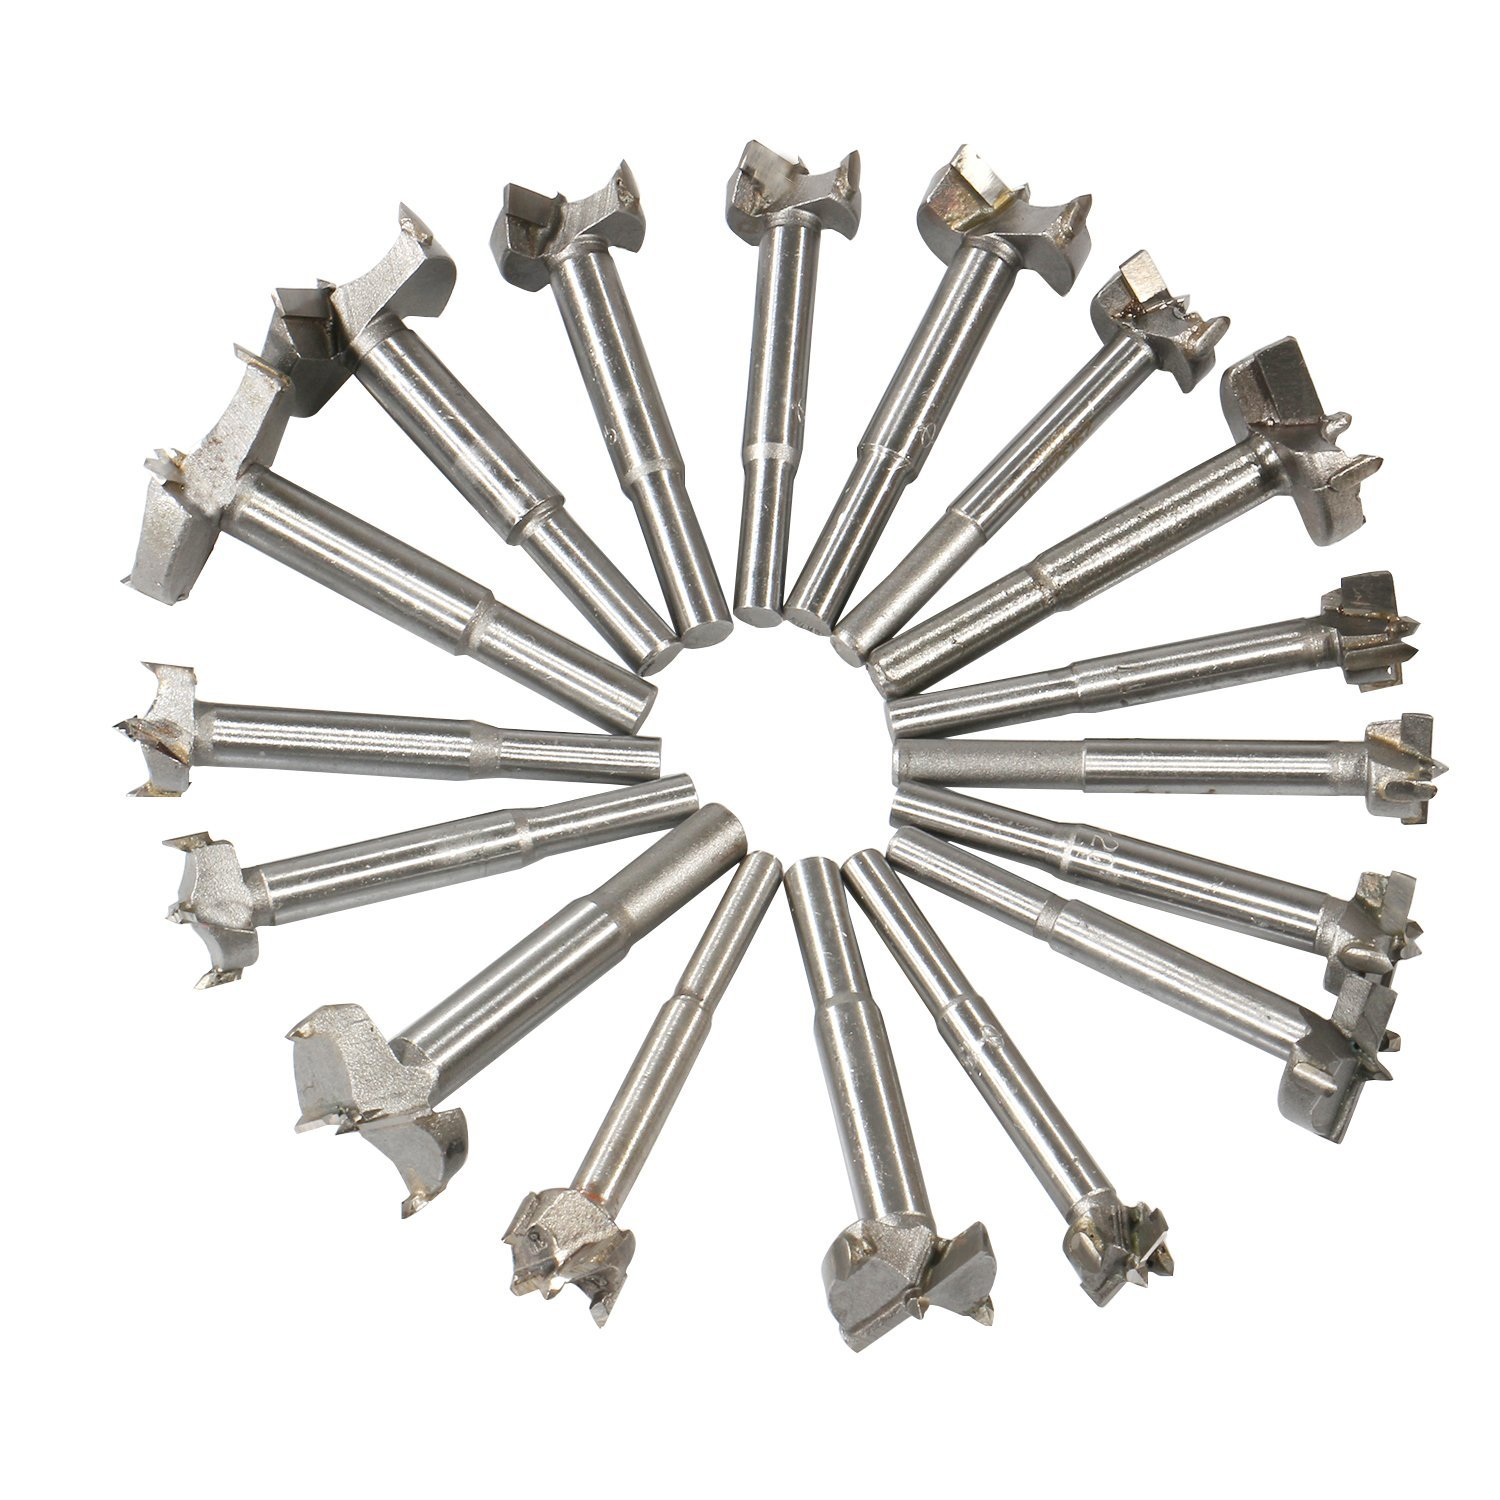 THGS Woodworking Forstner Drill Bits Sets, 17 PCS Carbon High Speed Steel Wood Working Hole Cutter Titanium Coated Wood Boring